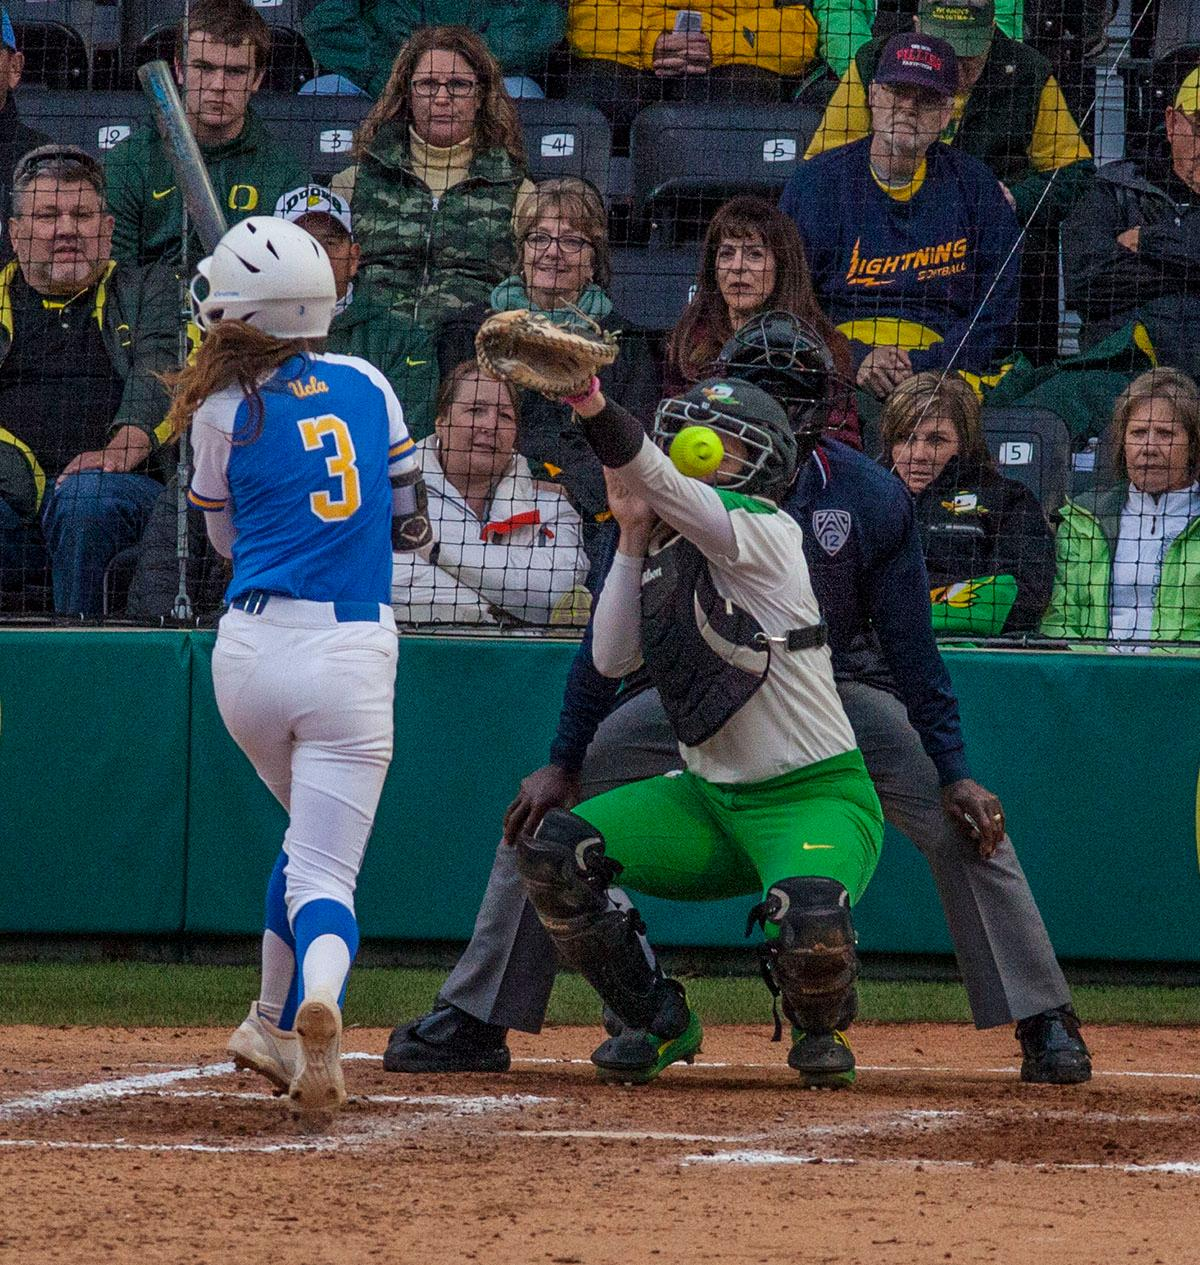 The UCLA Bruins defeated the University of Oregon Ducks 6-2 in Game 1 of a three-game series at Jane Sanders Stadium Friday afternoon. The Bruins managed a two-run homer by Brianna Tautalafua, and Rachel Garcia added a solo home run. Photo by William Tierney, Oregon News Lab